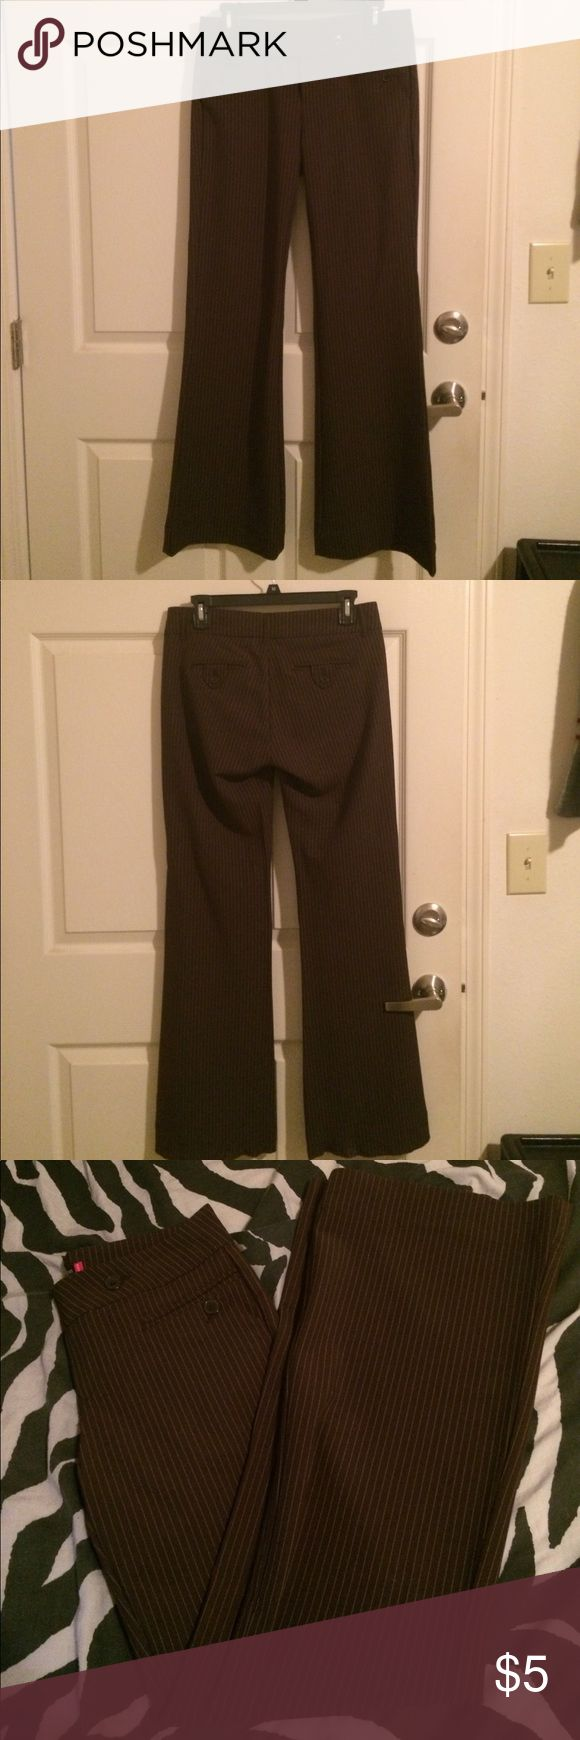 Pinstriped brown slacks Pinstriped brown pants/slacks; good condition; front and back pockets; size 5; 30 at waist and 31 in length. You're welcome to make an Offer or a bundle. Old College Inn Pants Trousers